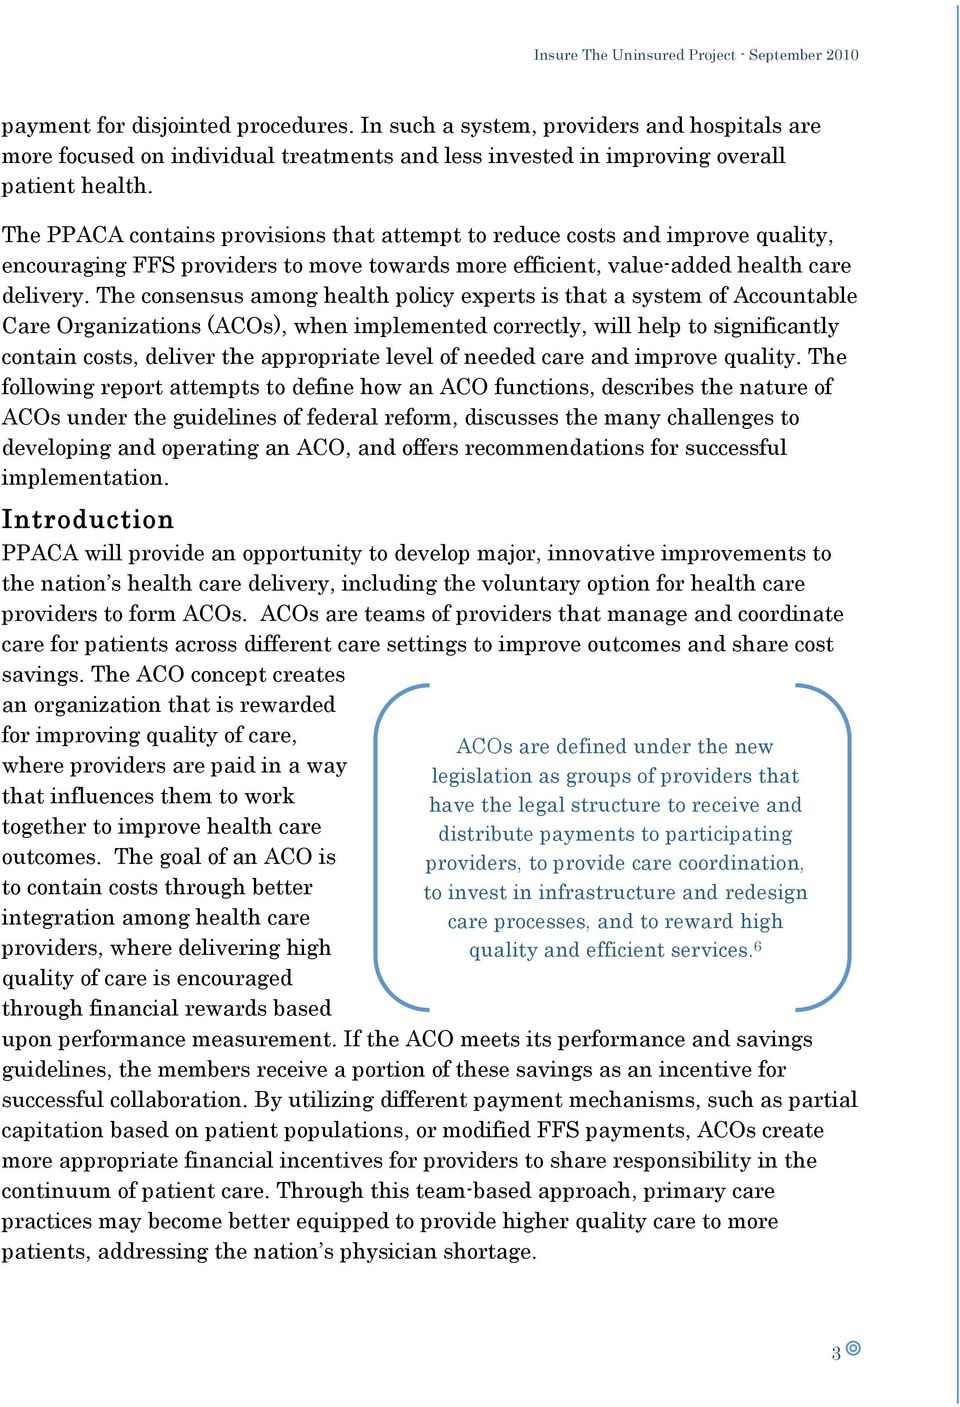 The consensus among health policy experts is that a system of Accountable Care Organizations (ACOs), when implemented correctly, will help to significantly contain costs, deliver the appropriate